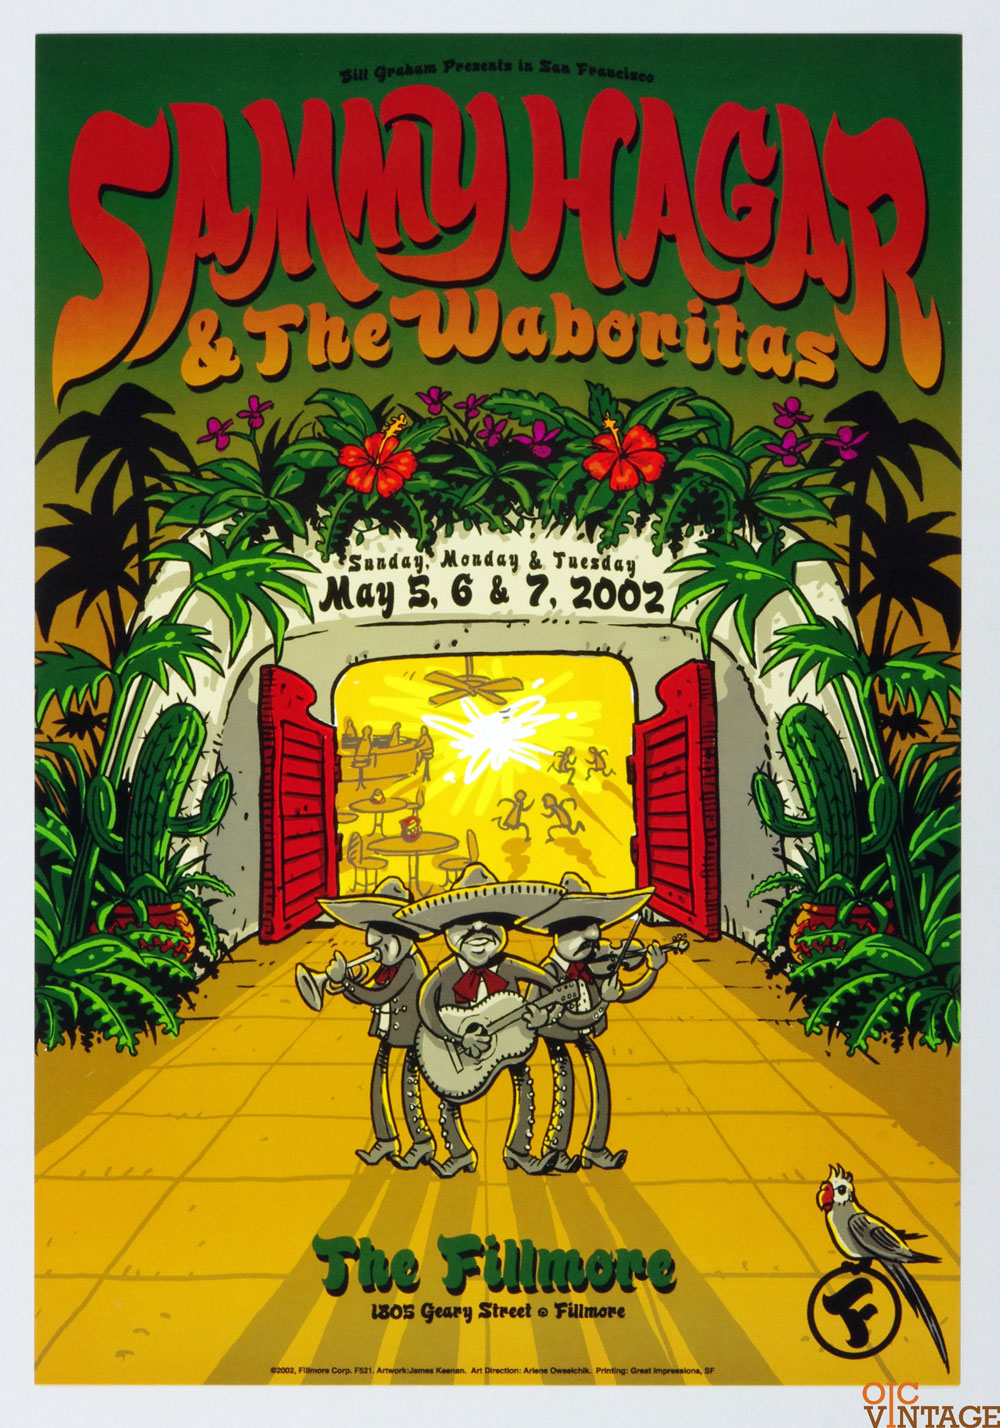 New Fillmore F521 Poster Sammy Hagar 7 the Waboritas 2002 May 5